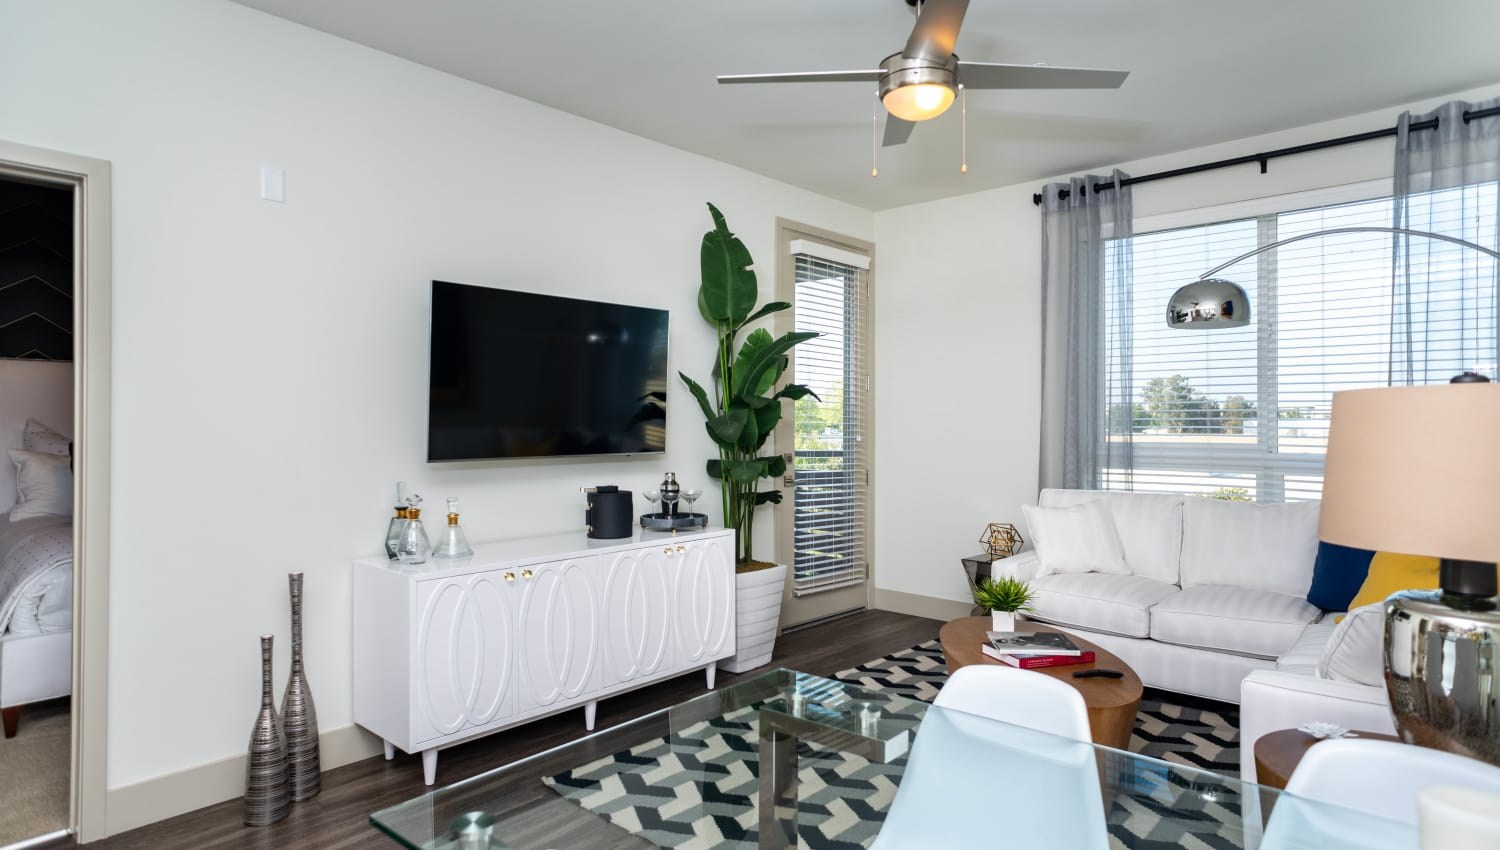 Ceiling fan and modern decor in a model home's living area at Fusion Apartments in Irvine, California